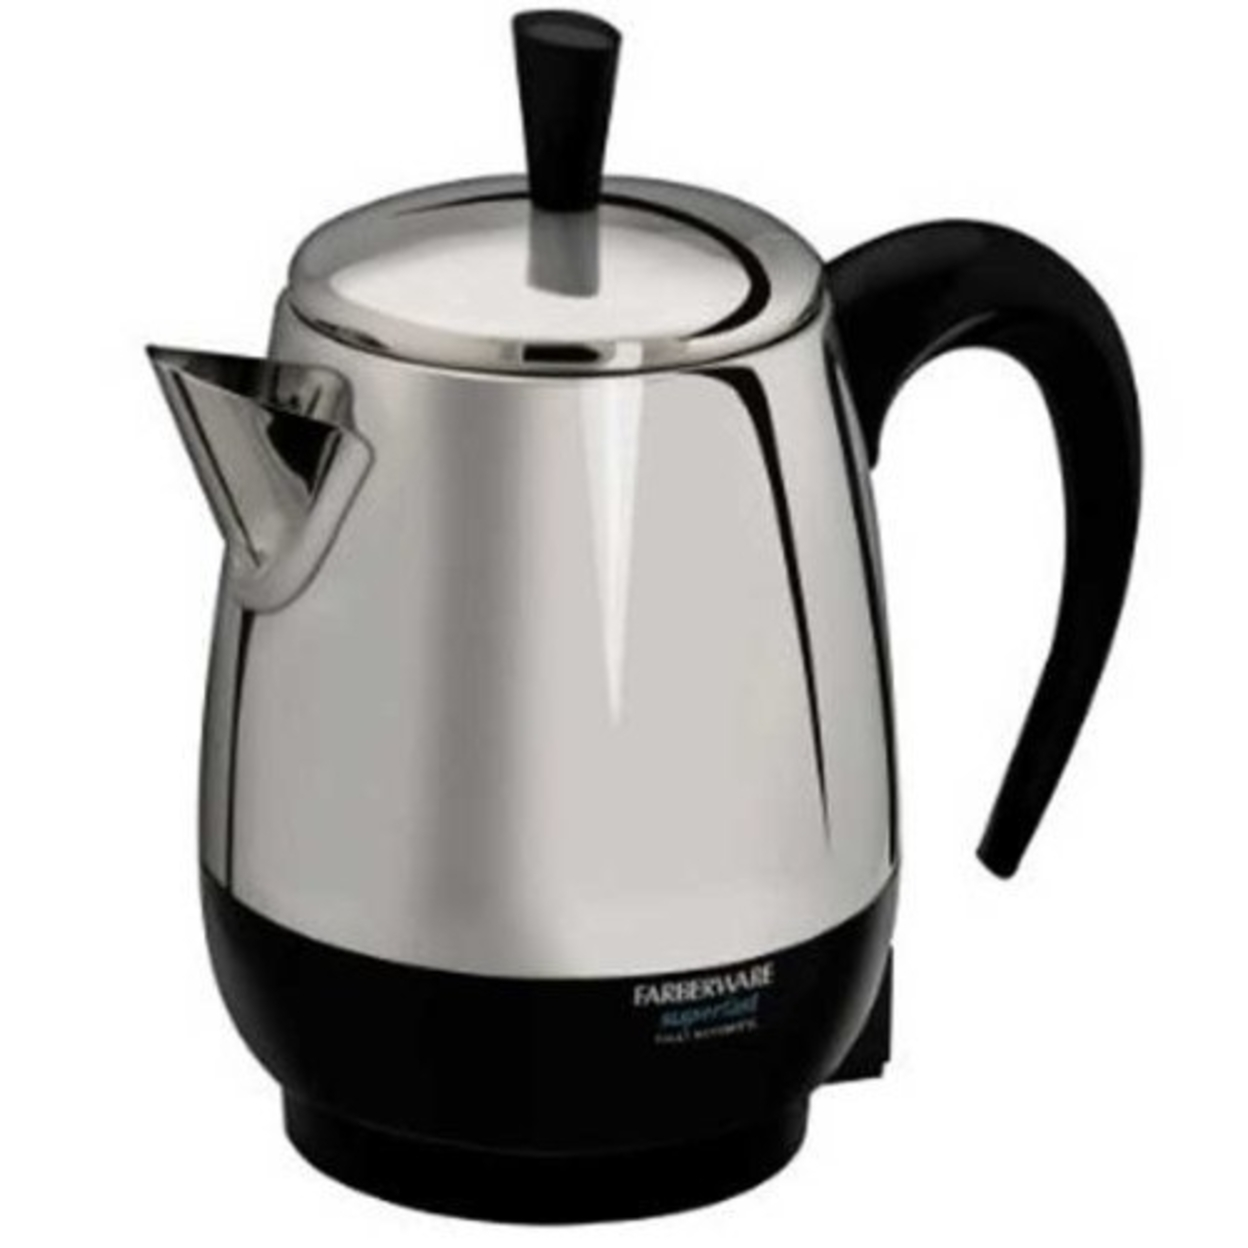 Farberware Electrics Fcp280 Millenium Automatic Stainless Steel Coffee Percolator - 2-8 Cup 596d157e2a00e447a74ebd74